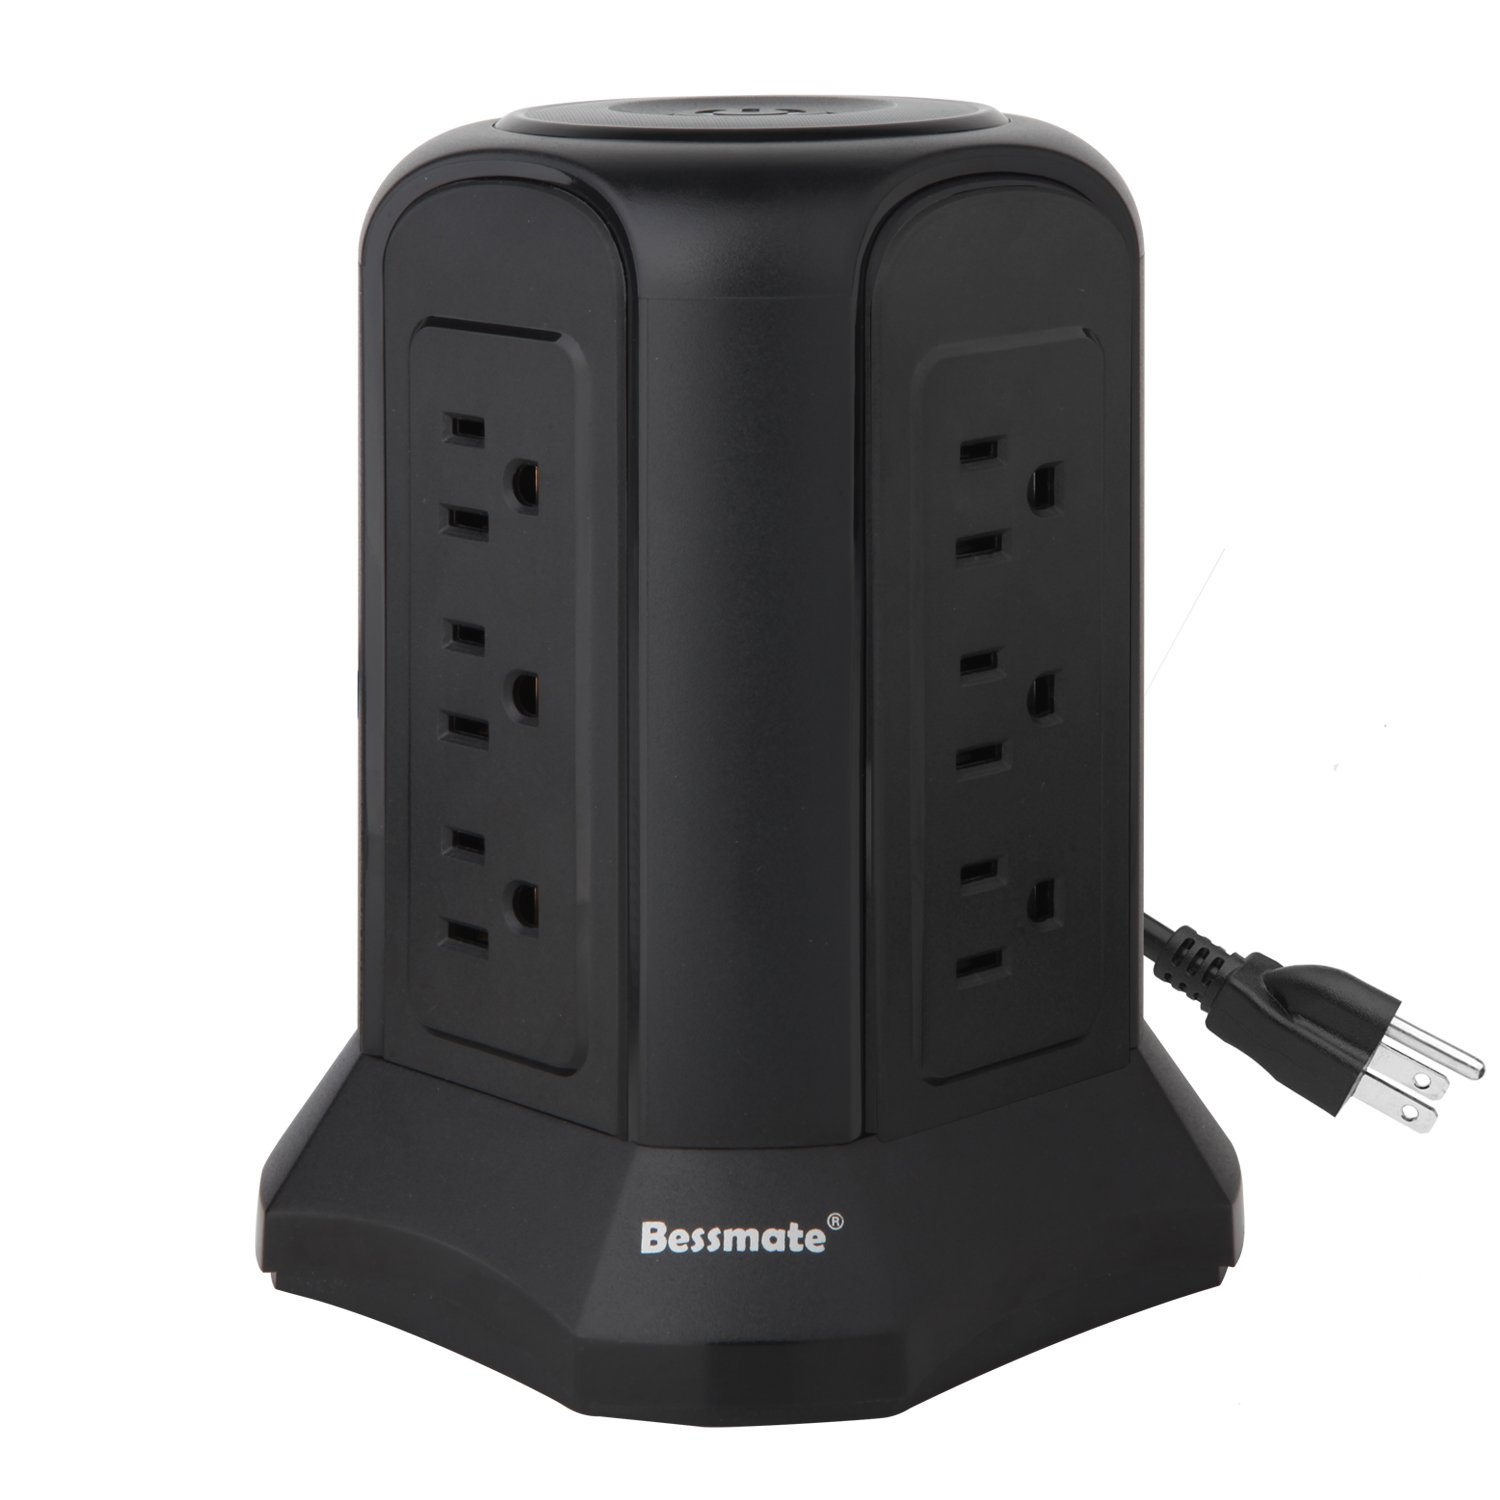 Bessmate Power Strip 12 Outlet Surge Protector with 6.5-Foot Power Cord -1000 Joules (Black)